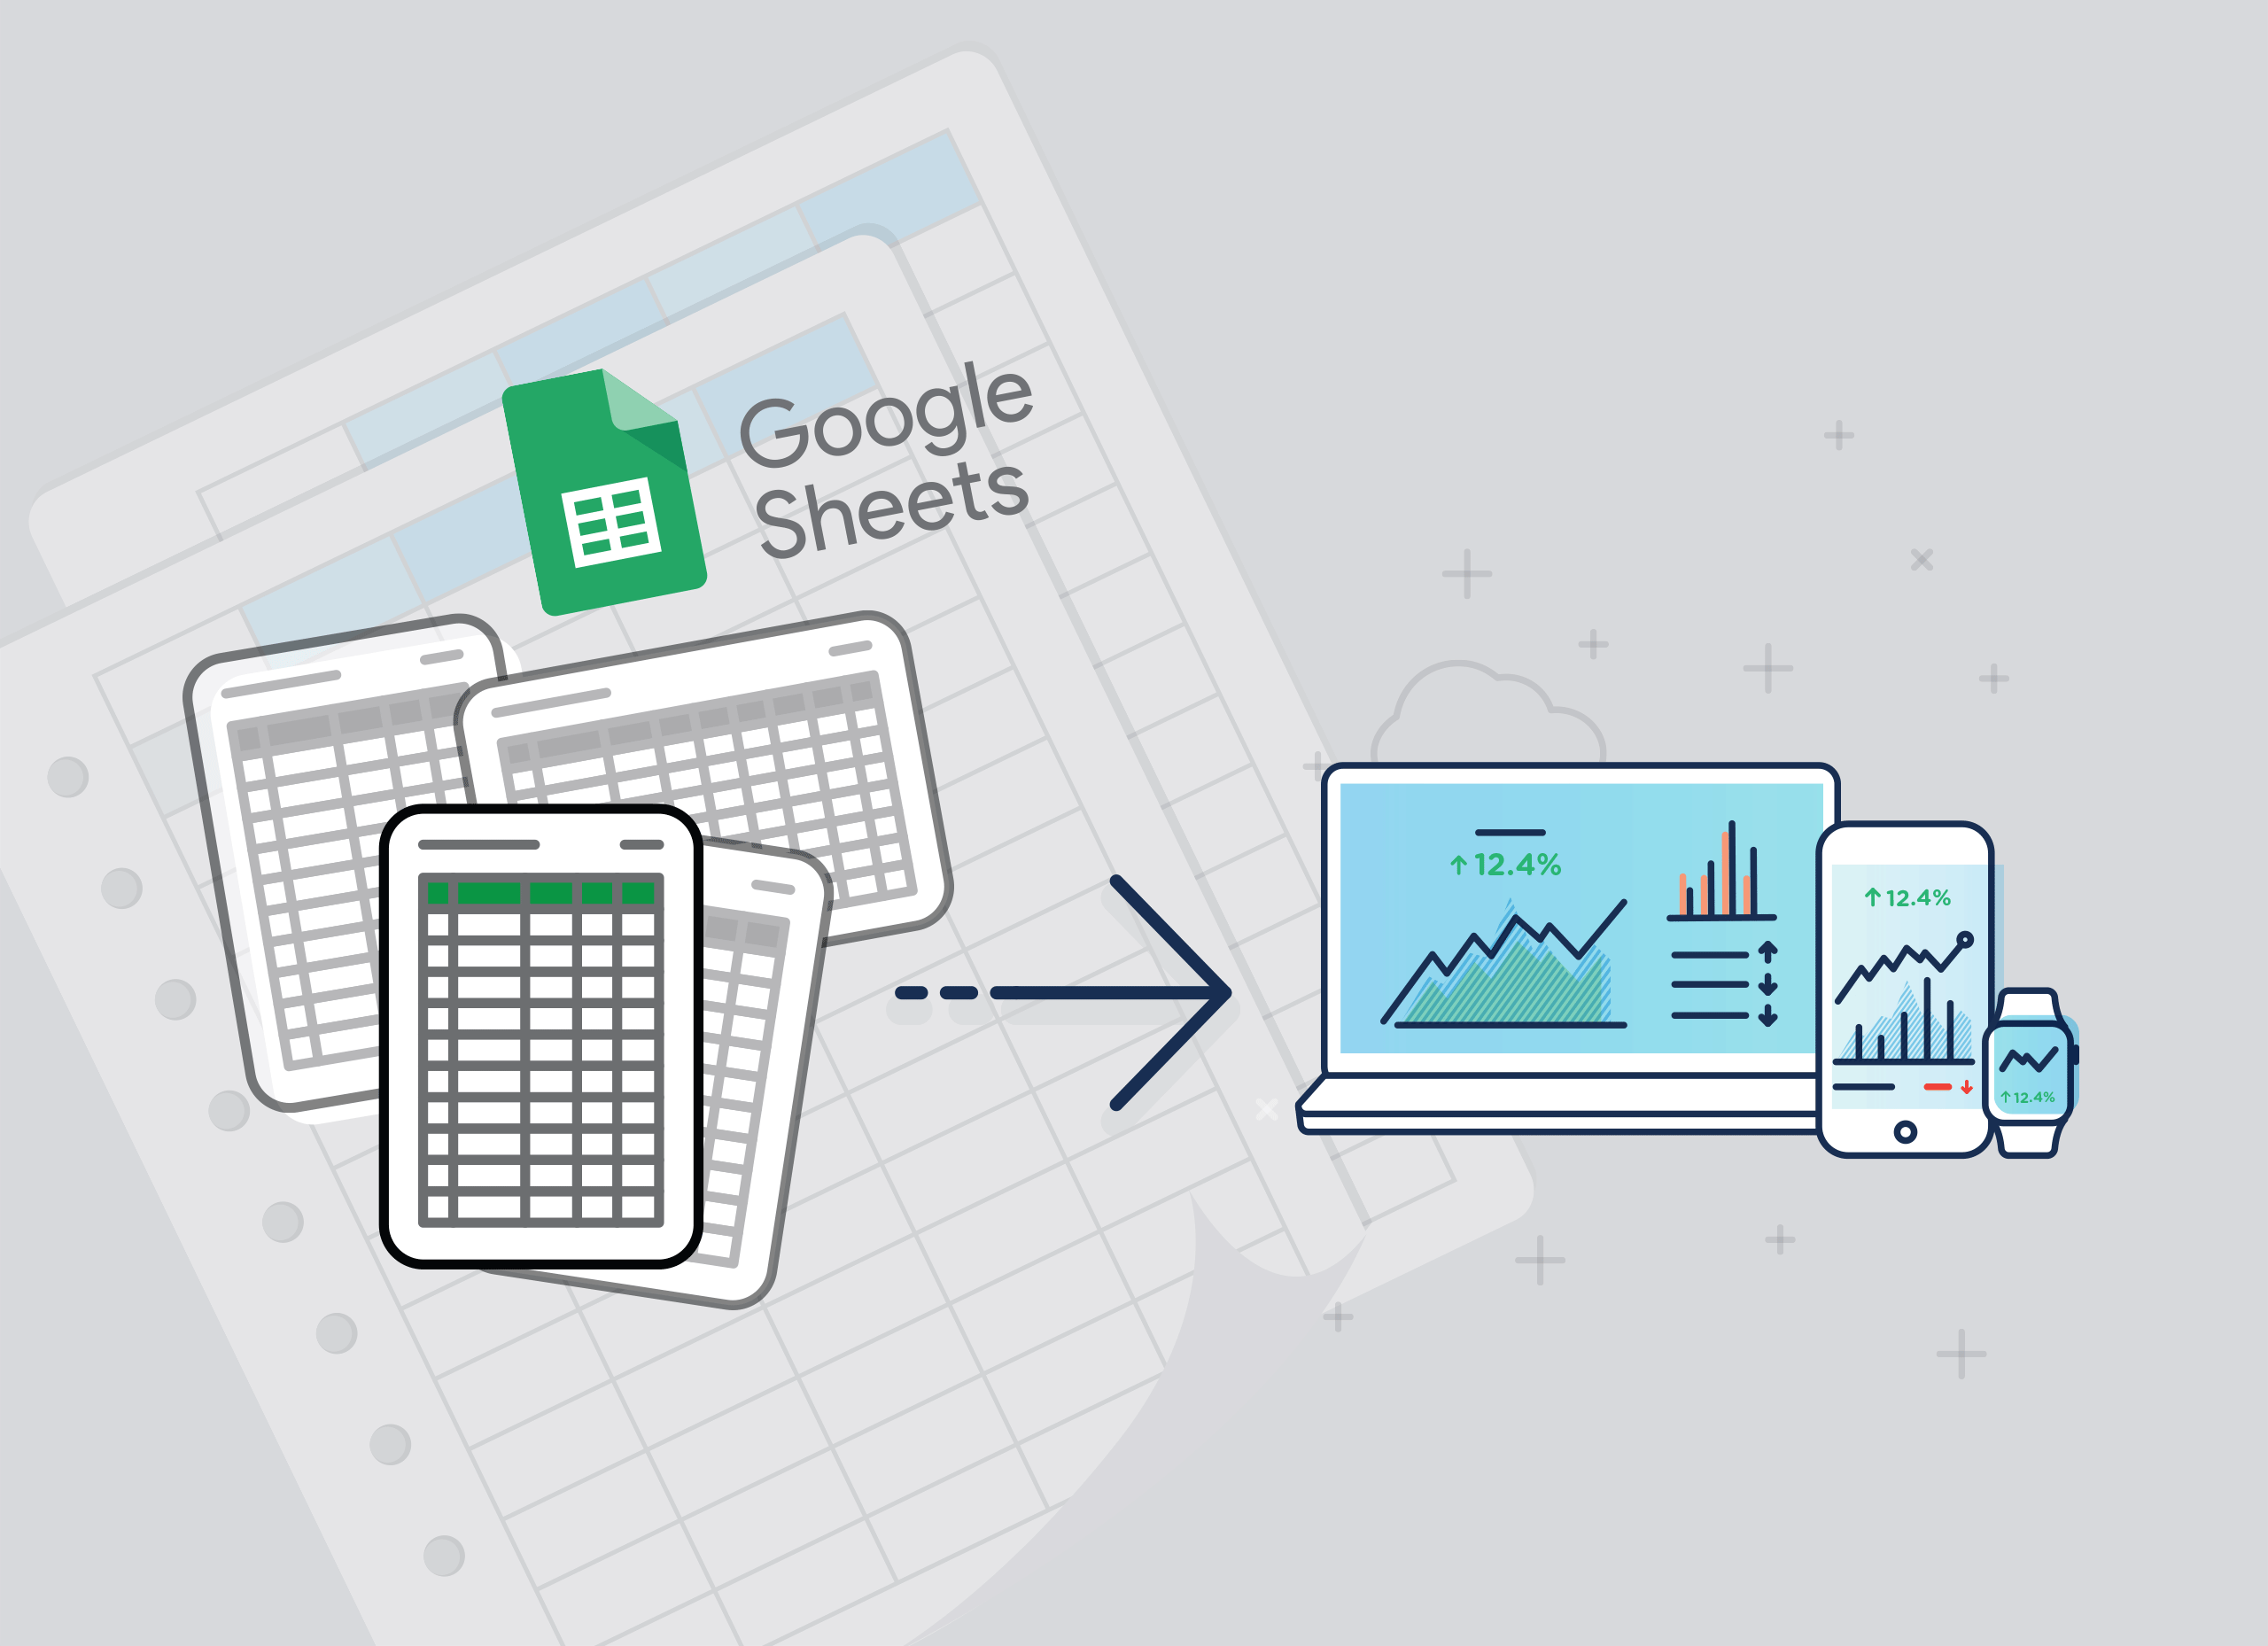 New: The Google Sheets Integration is Live!